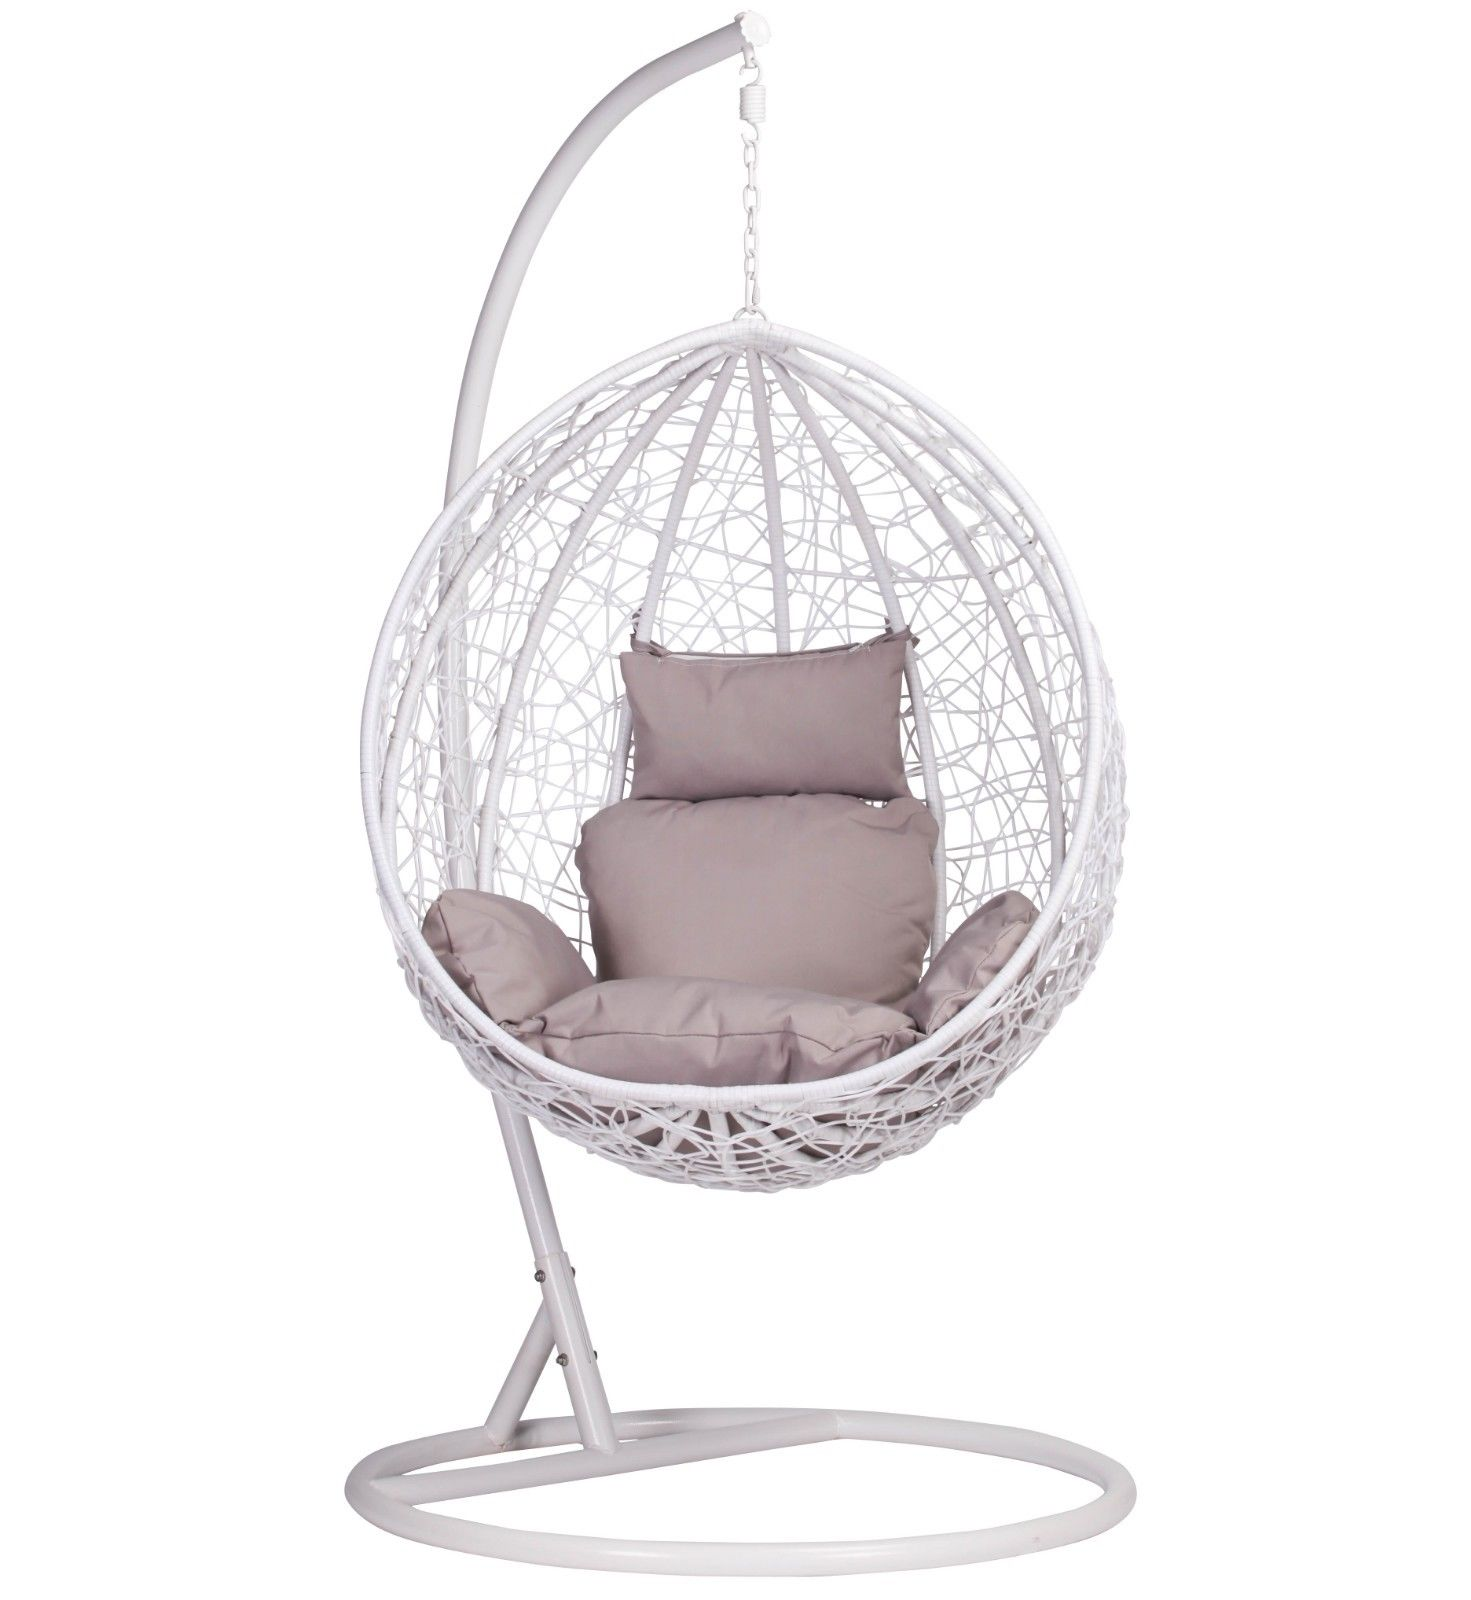 Buy Egg Chair White Rattan Swing Weave Patio Garden Hanging Egg Chair